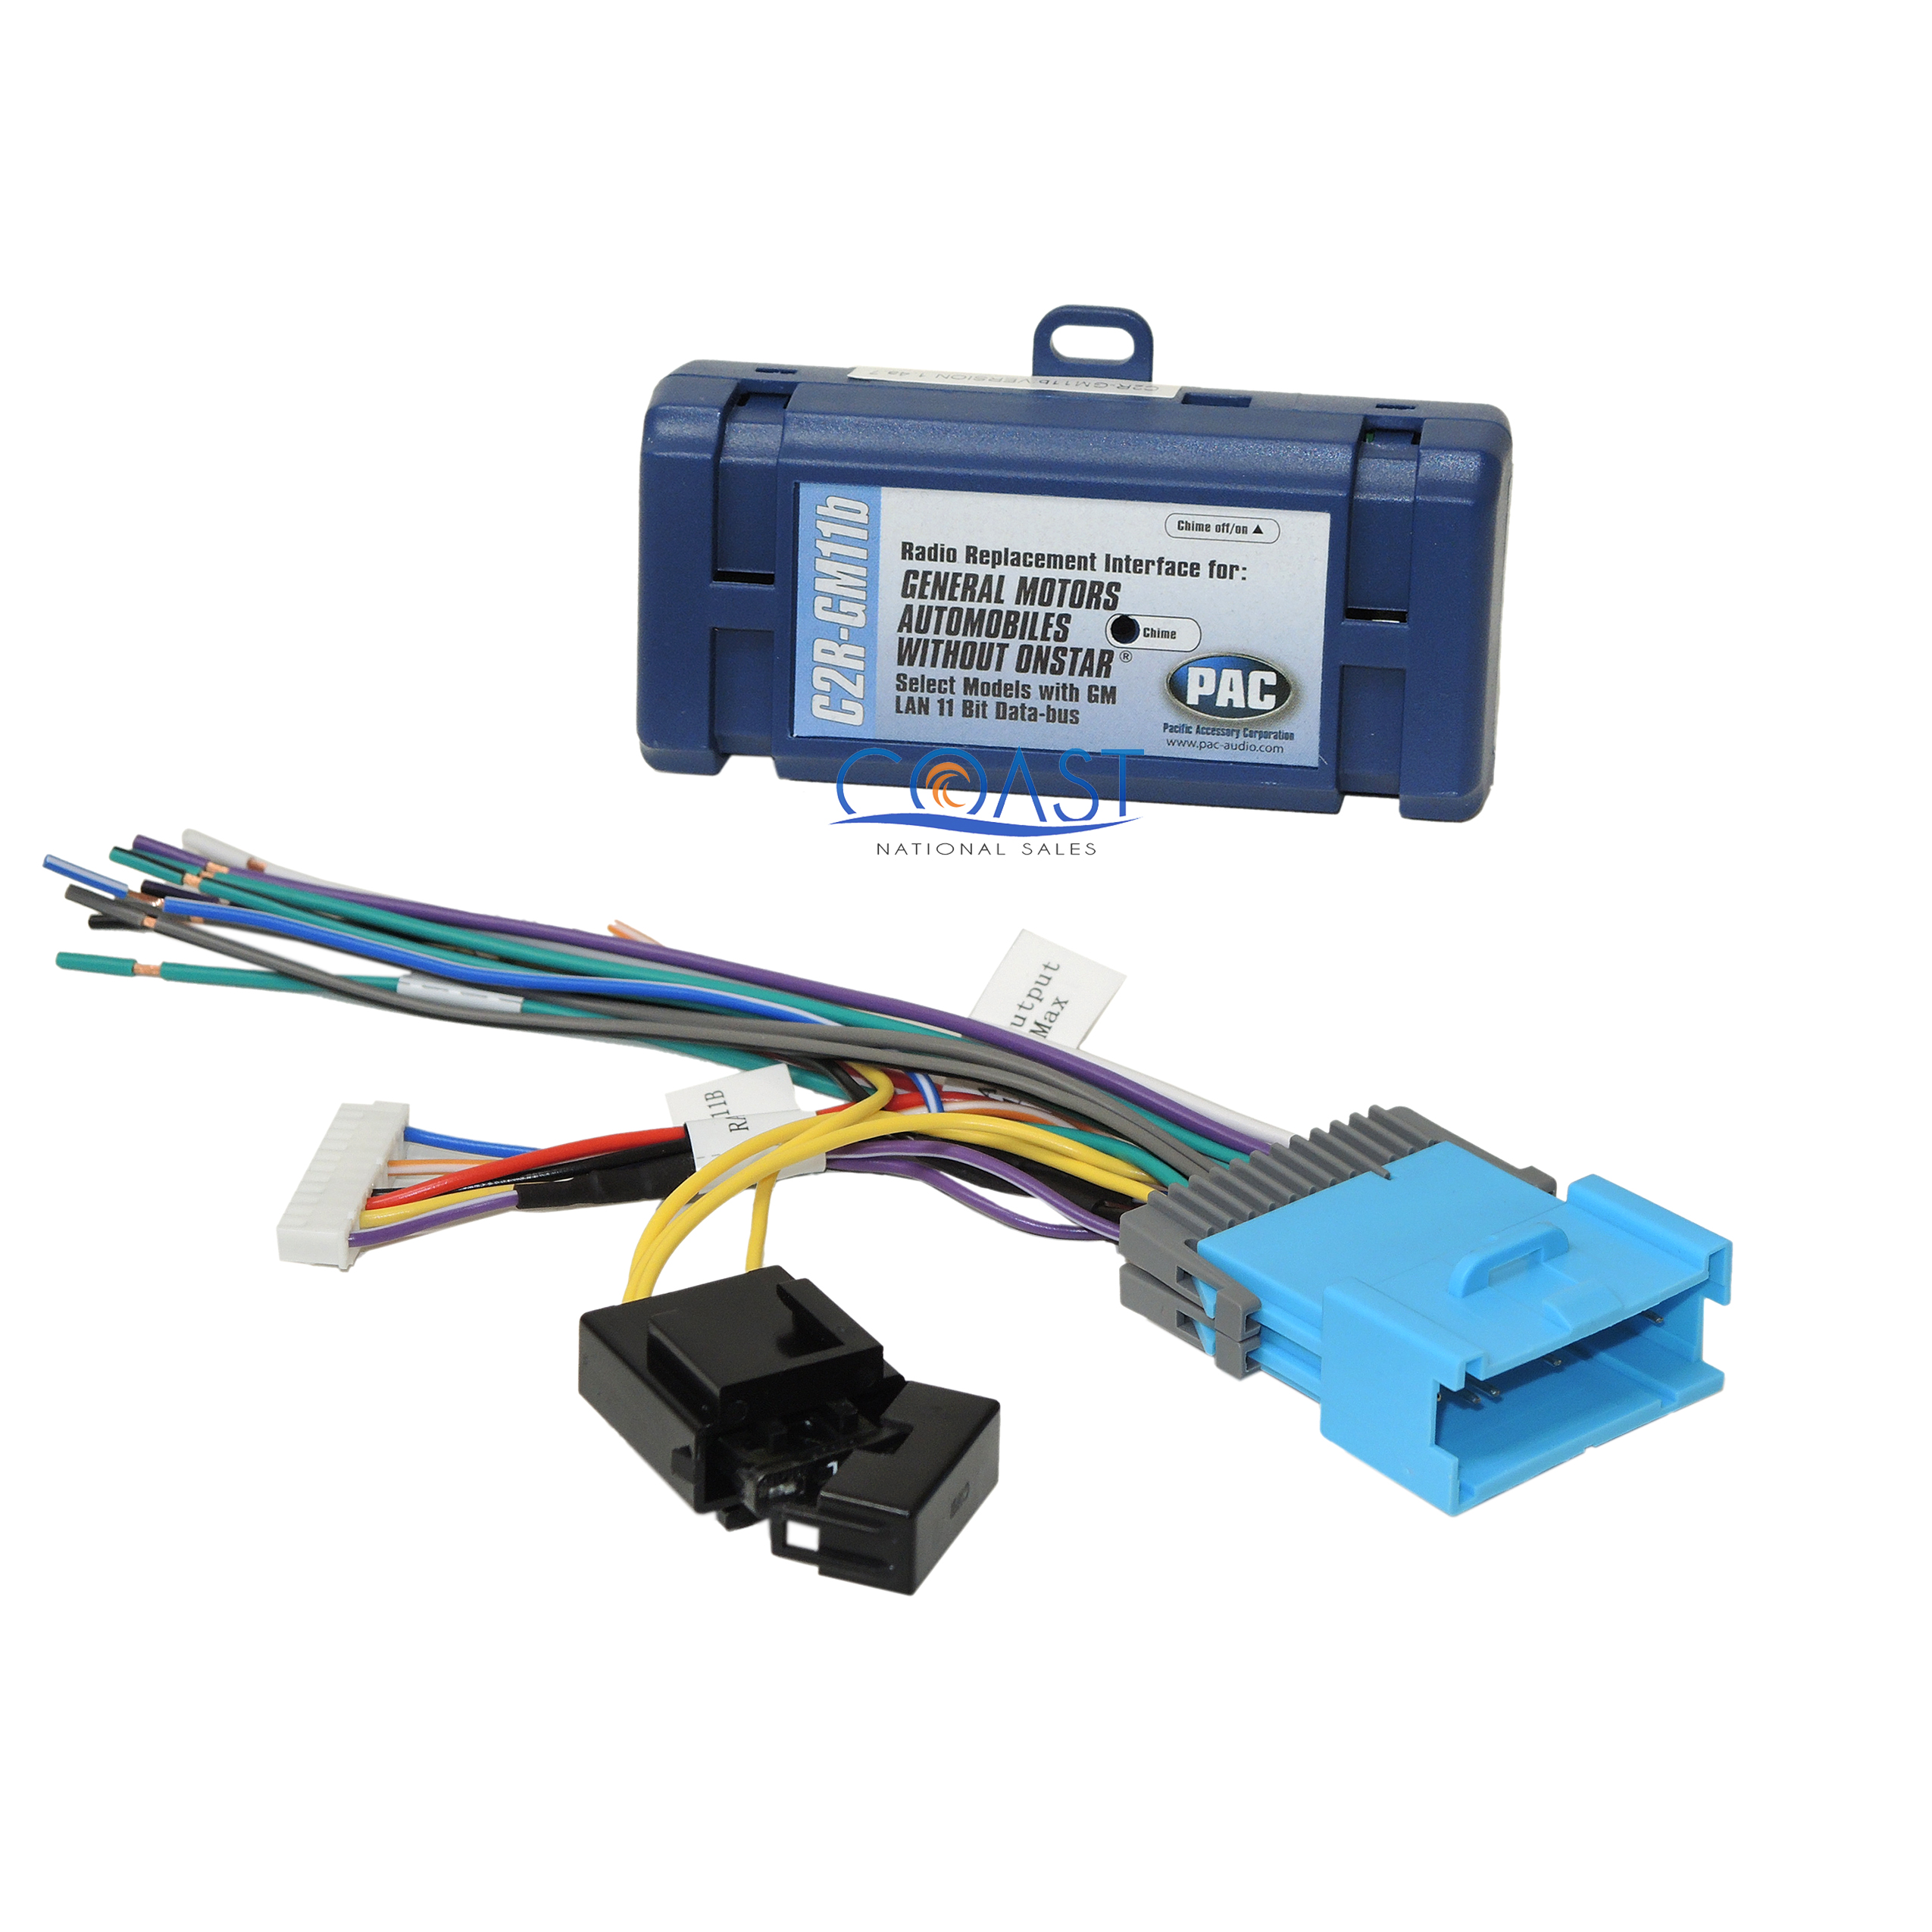 gm radio chime interface wiring diagram car radio stereo replacement wire harness interface for 04 up  replacement wire harness interface